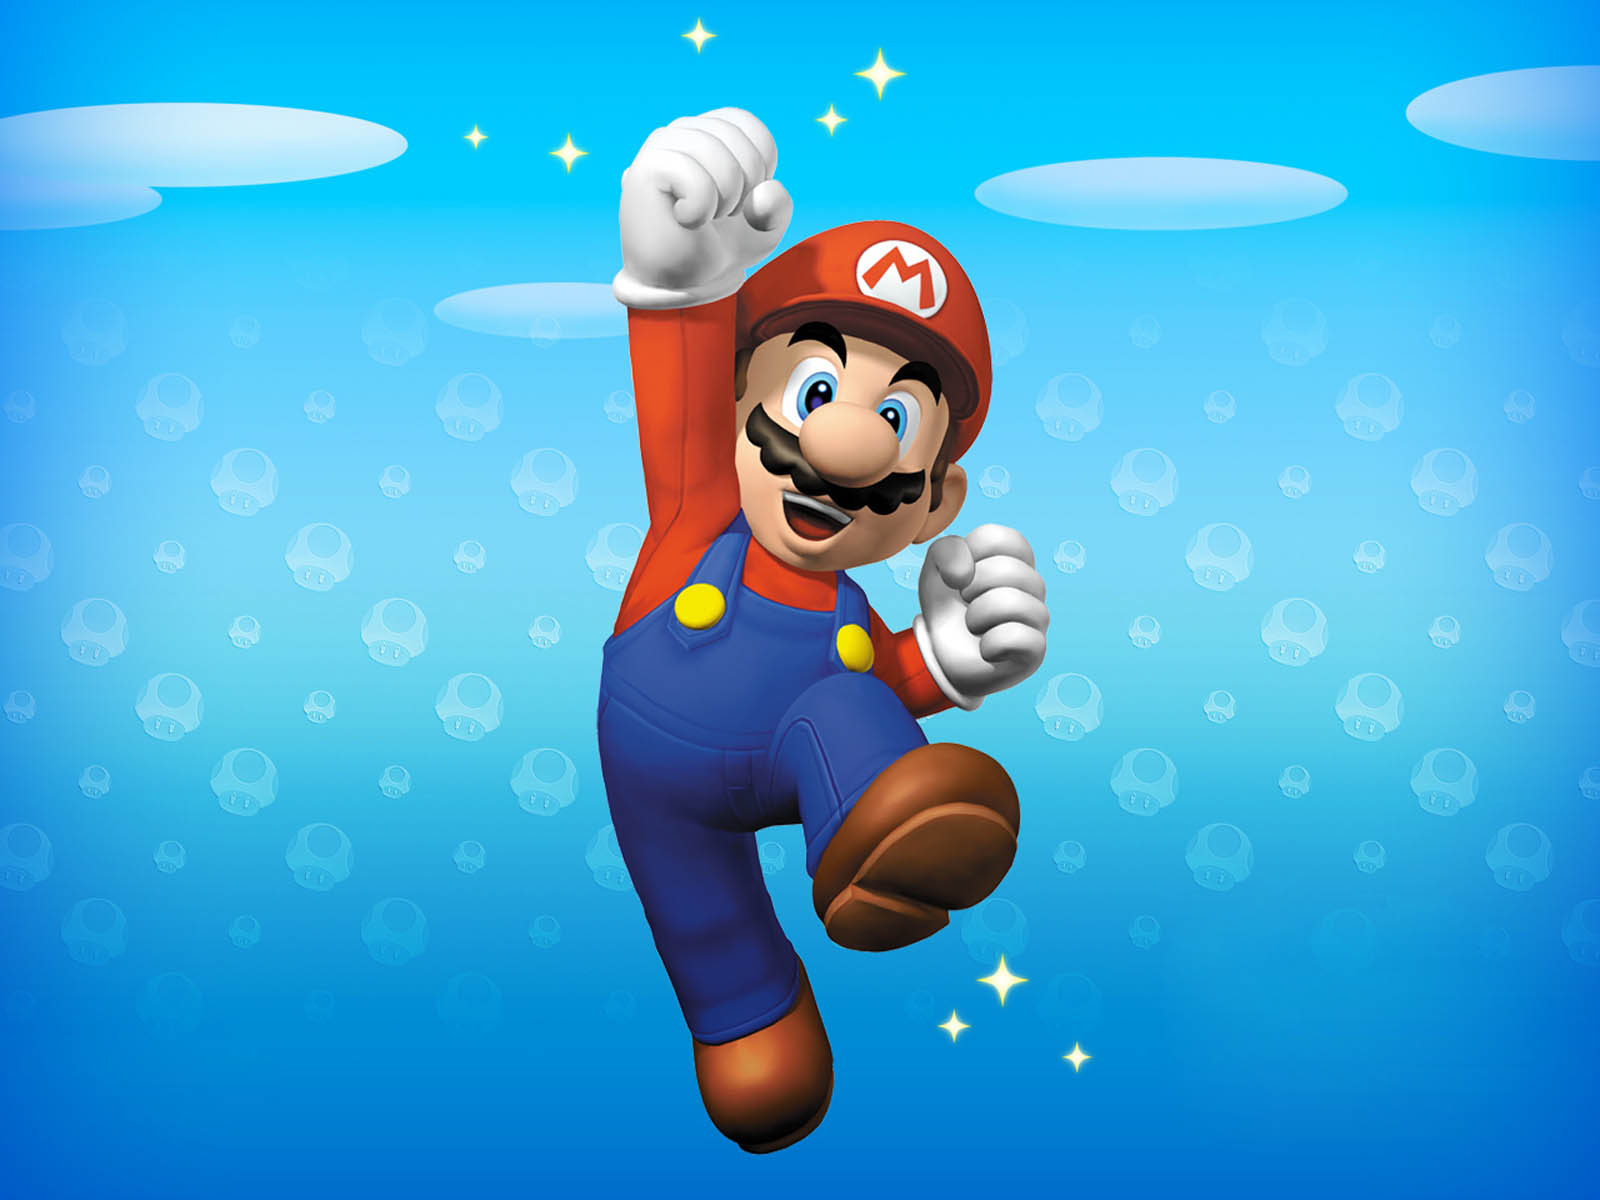 Mario Game Free Download In Mobile Phone